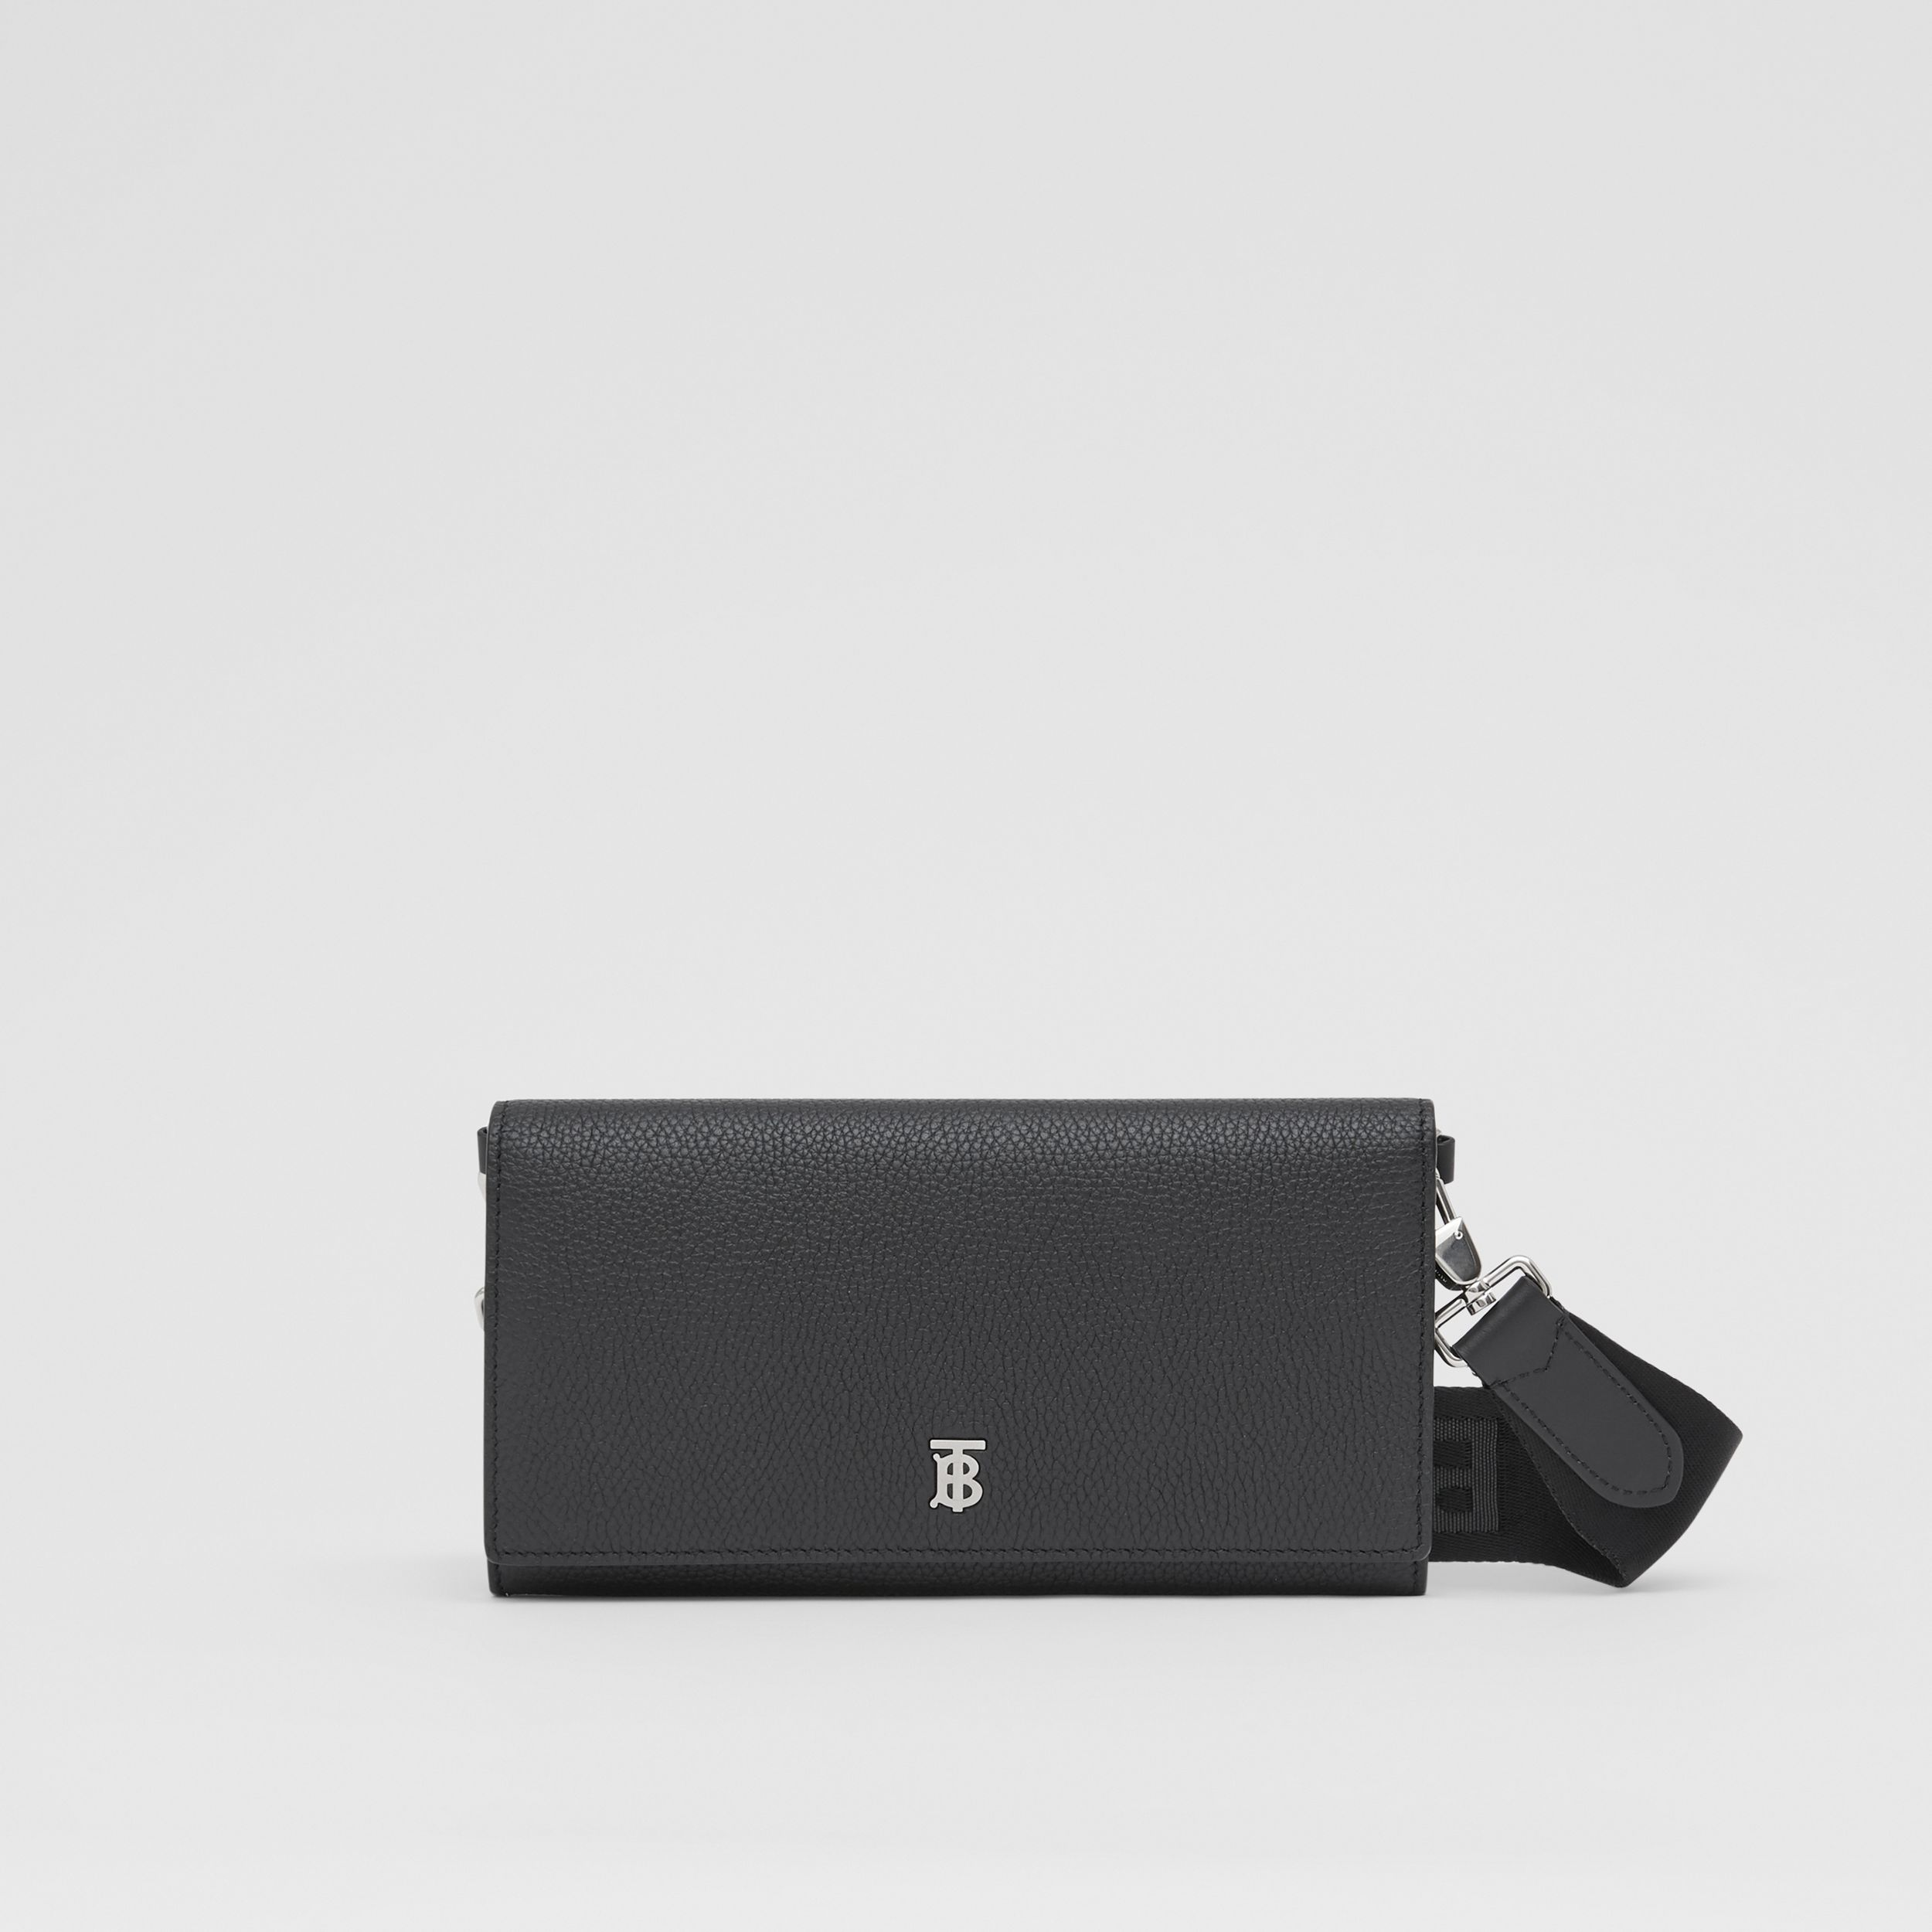 Grainy Leather Wallet with Detachable Strap in Black | Burberry - 1